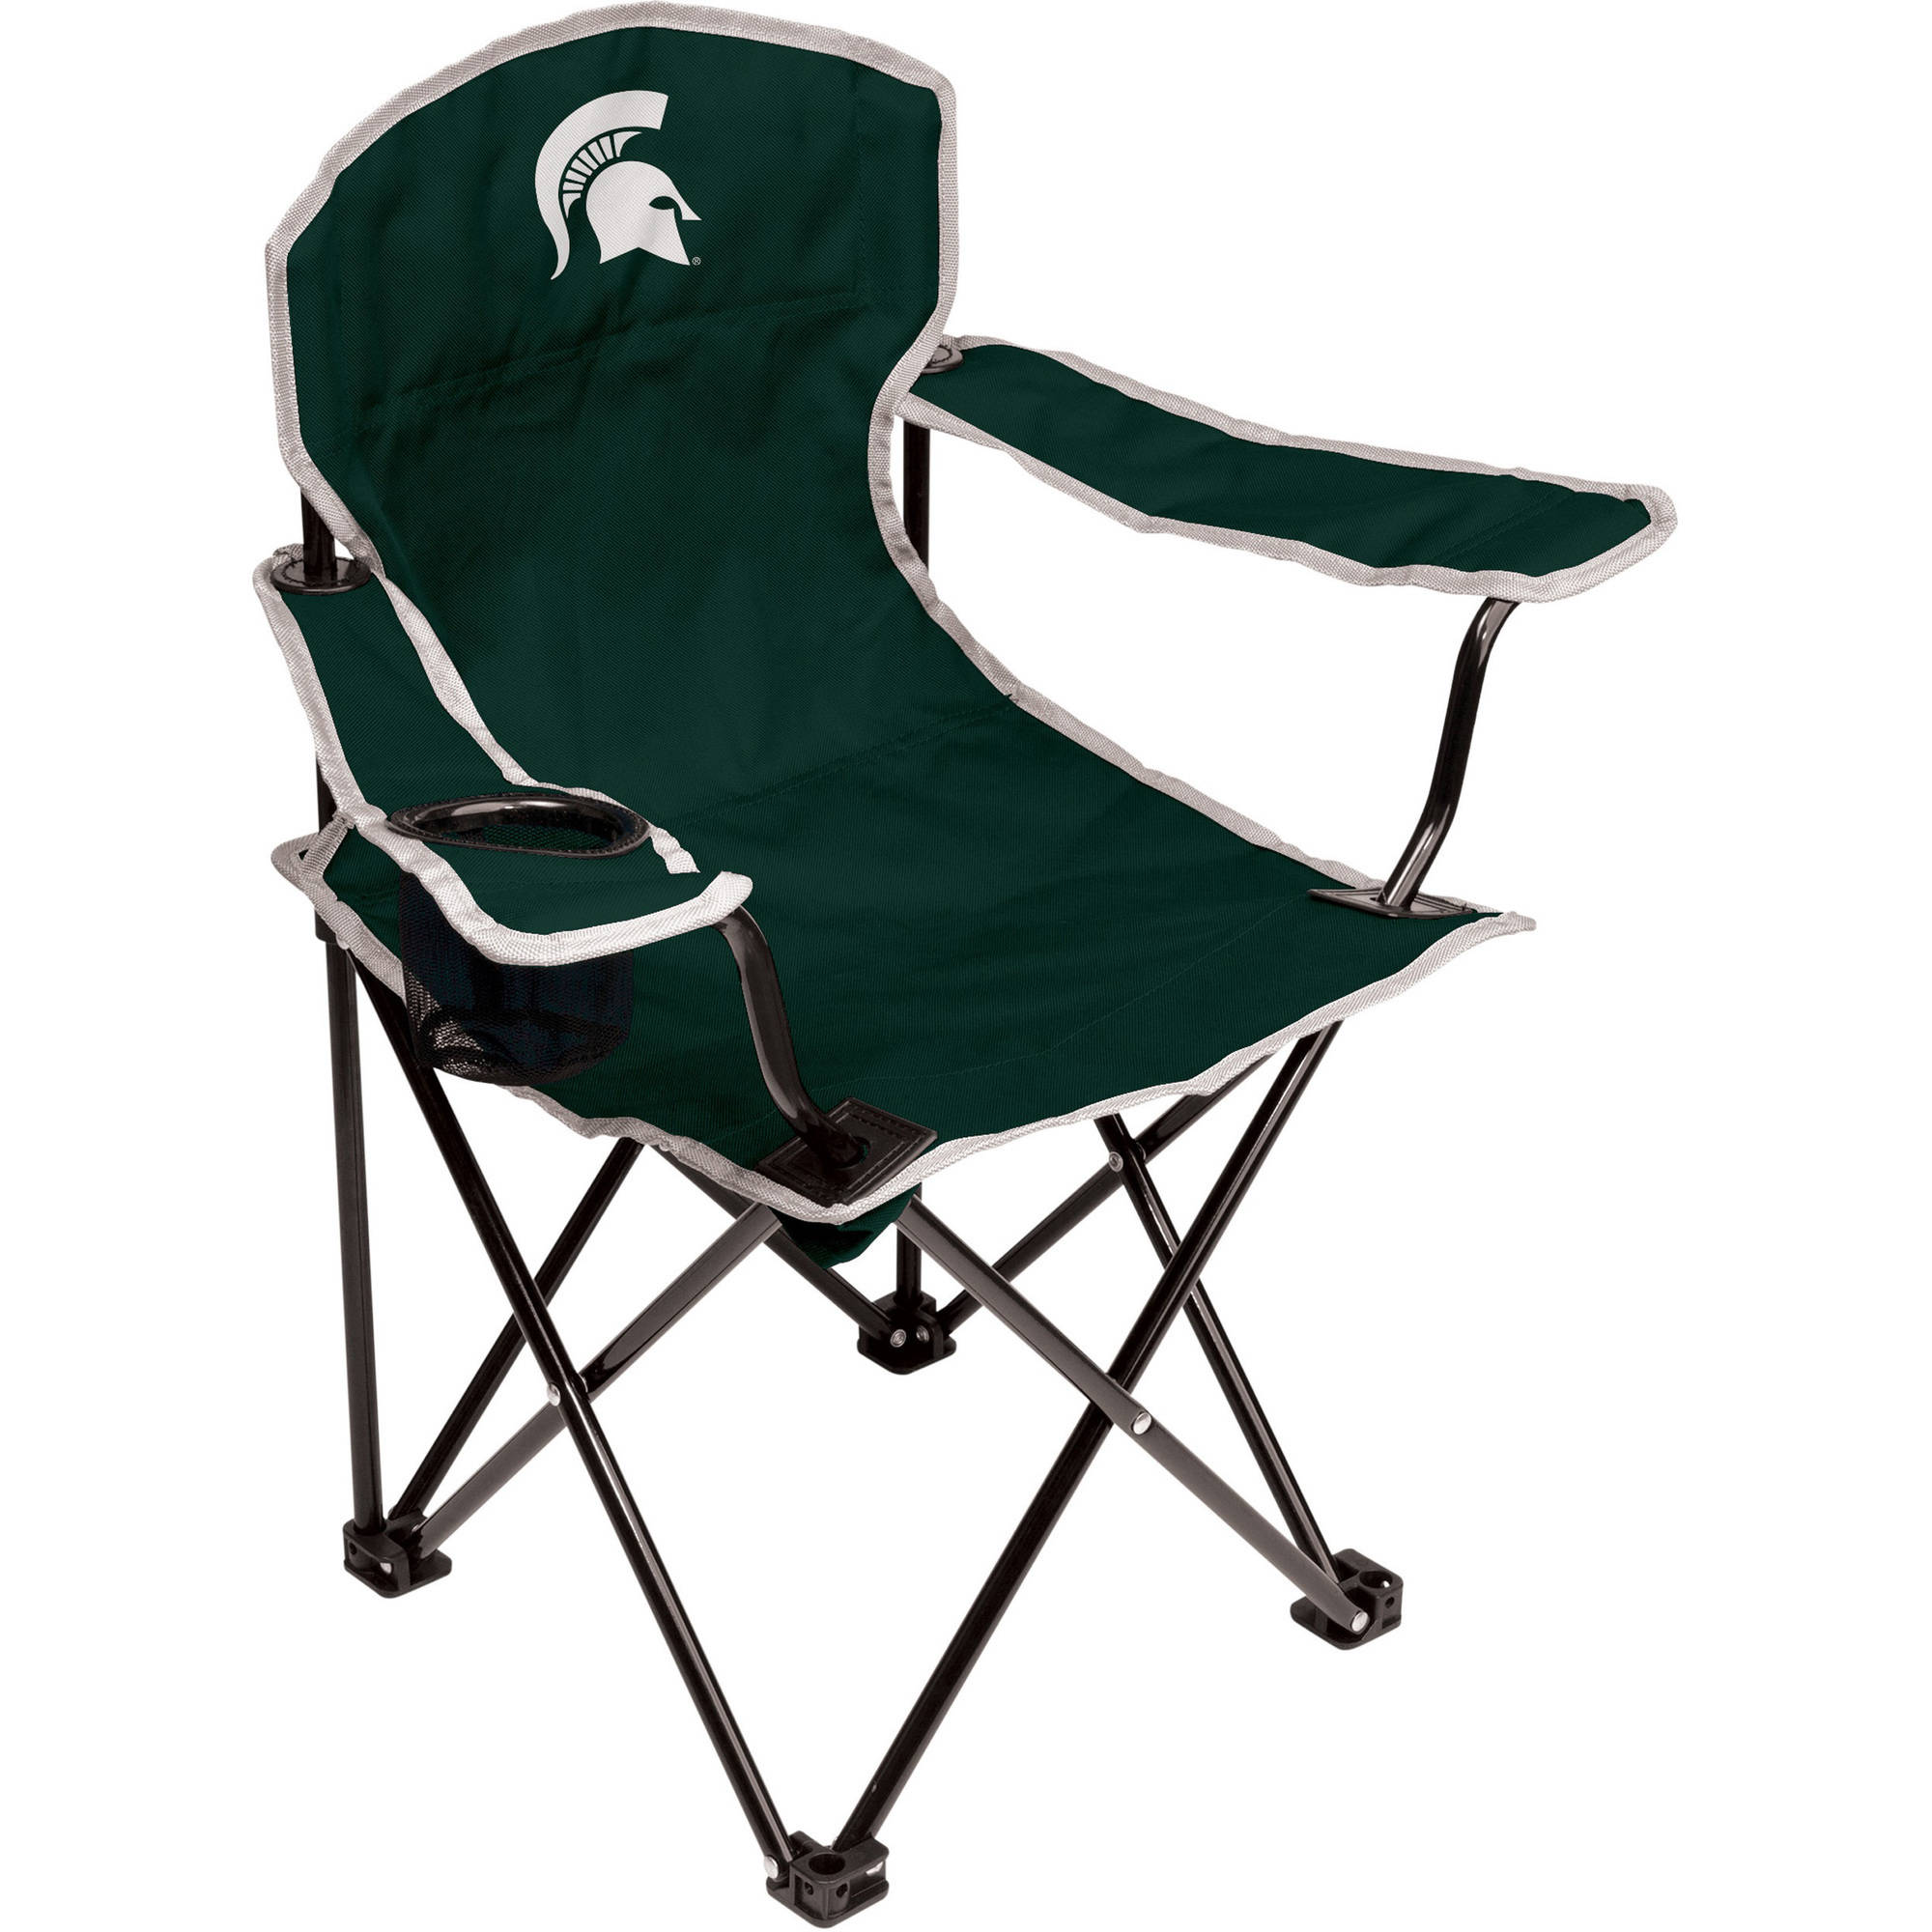 NCAA Michigan State Spartans Youth Size Tailgate Chair from Coleman by Rawlings